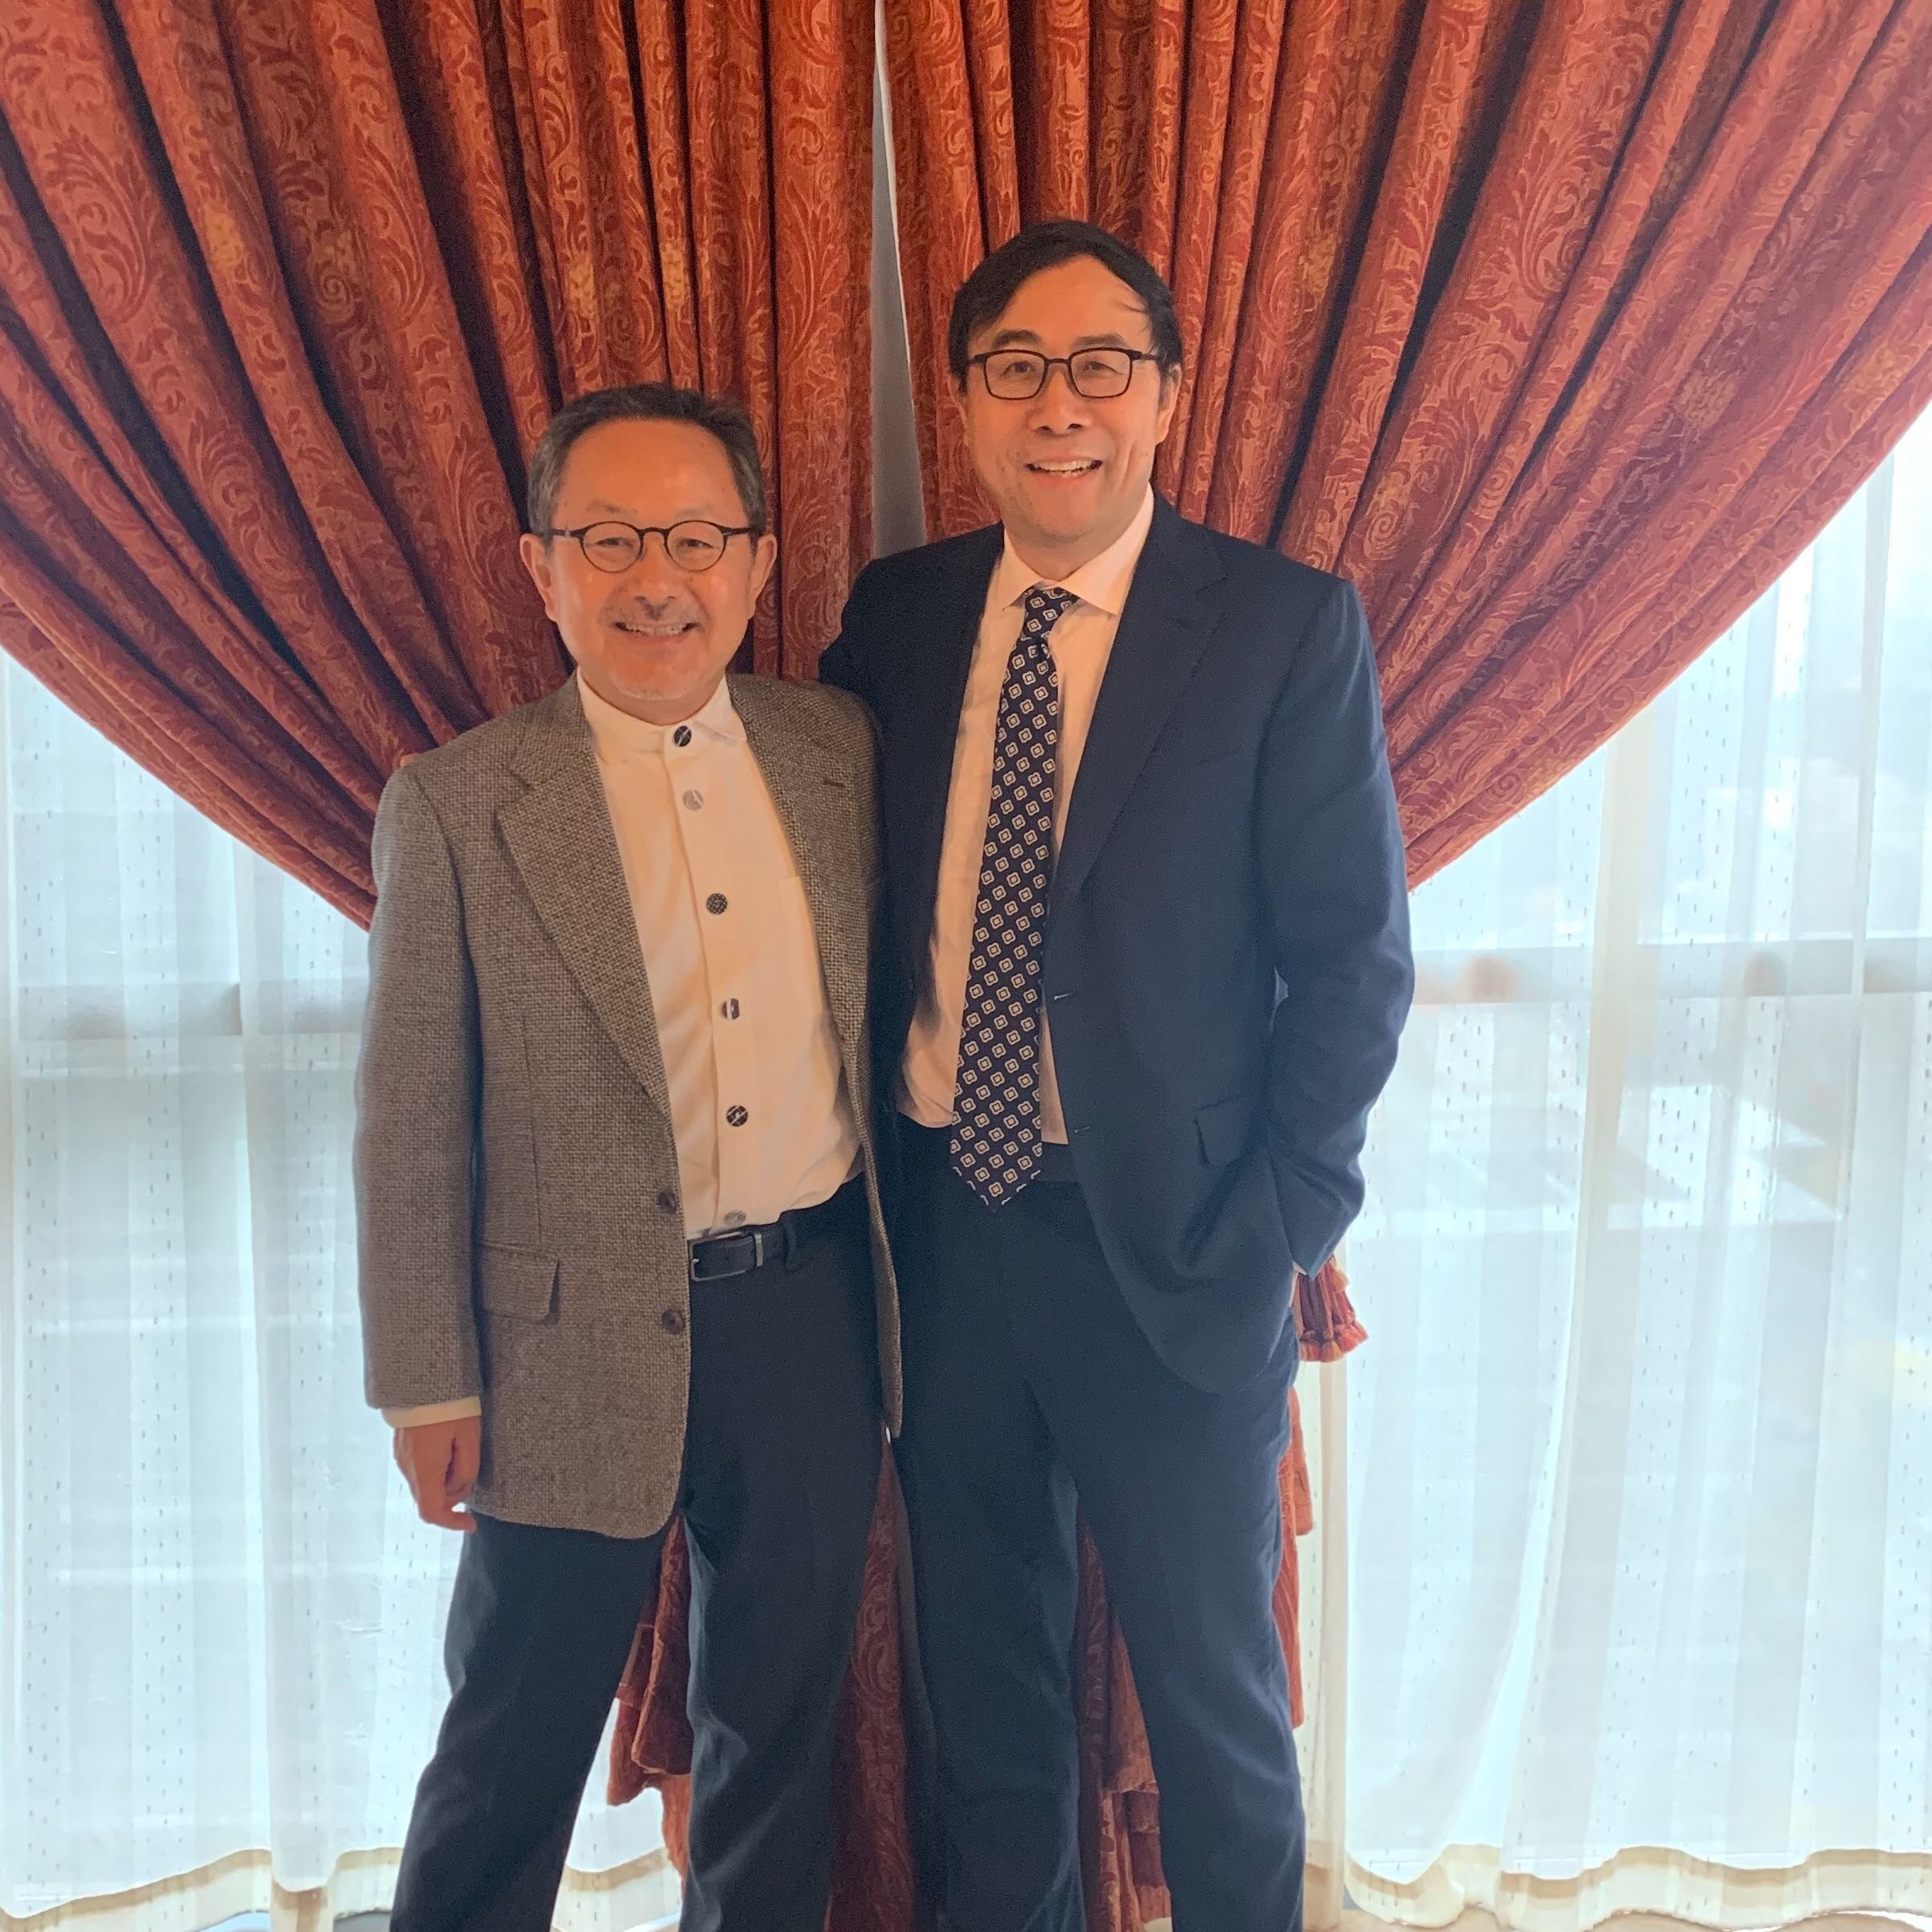 Shinobu Kitayama with Kaiping Peng, a graduate of the culture and cognition program, and currently the social science dean at the Tsinghua University, Beijing, China